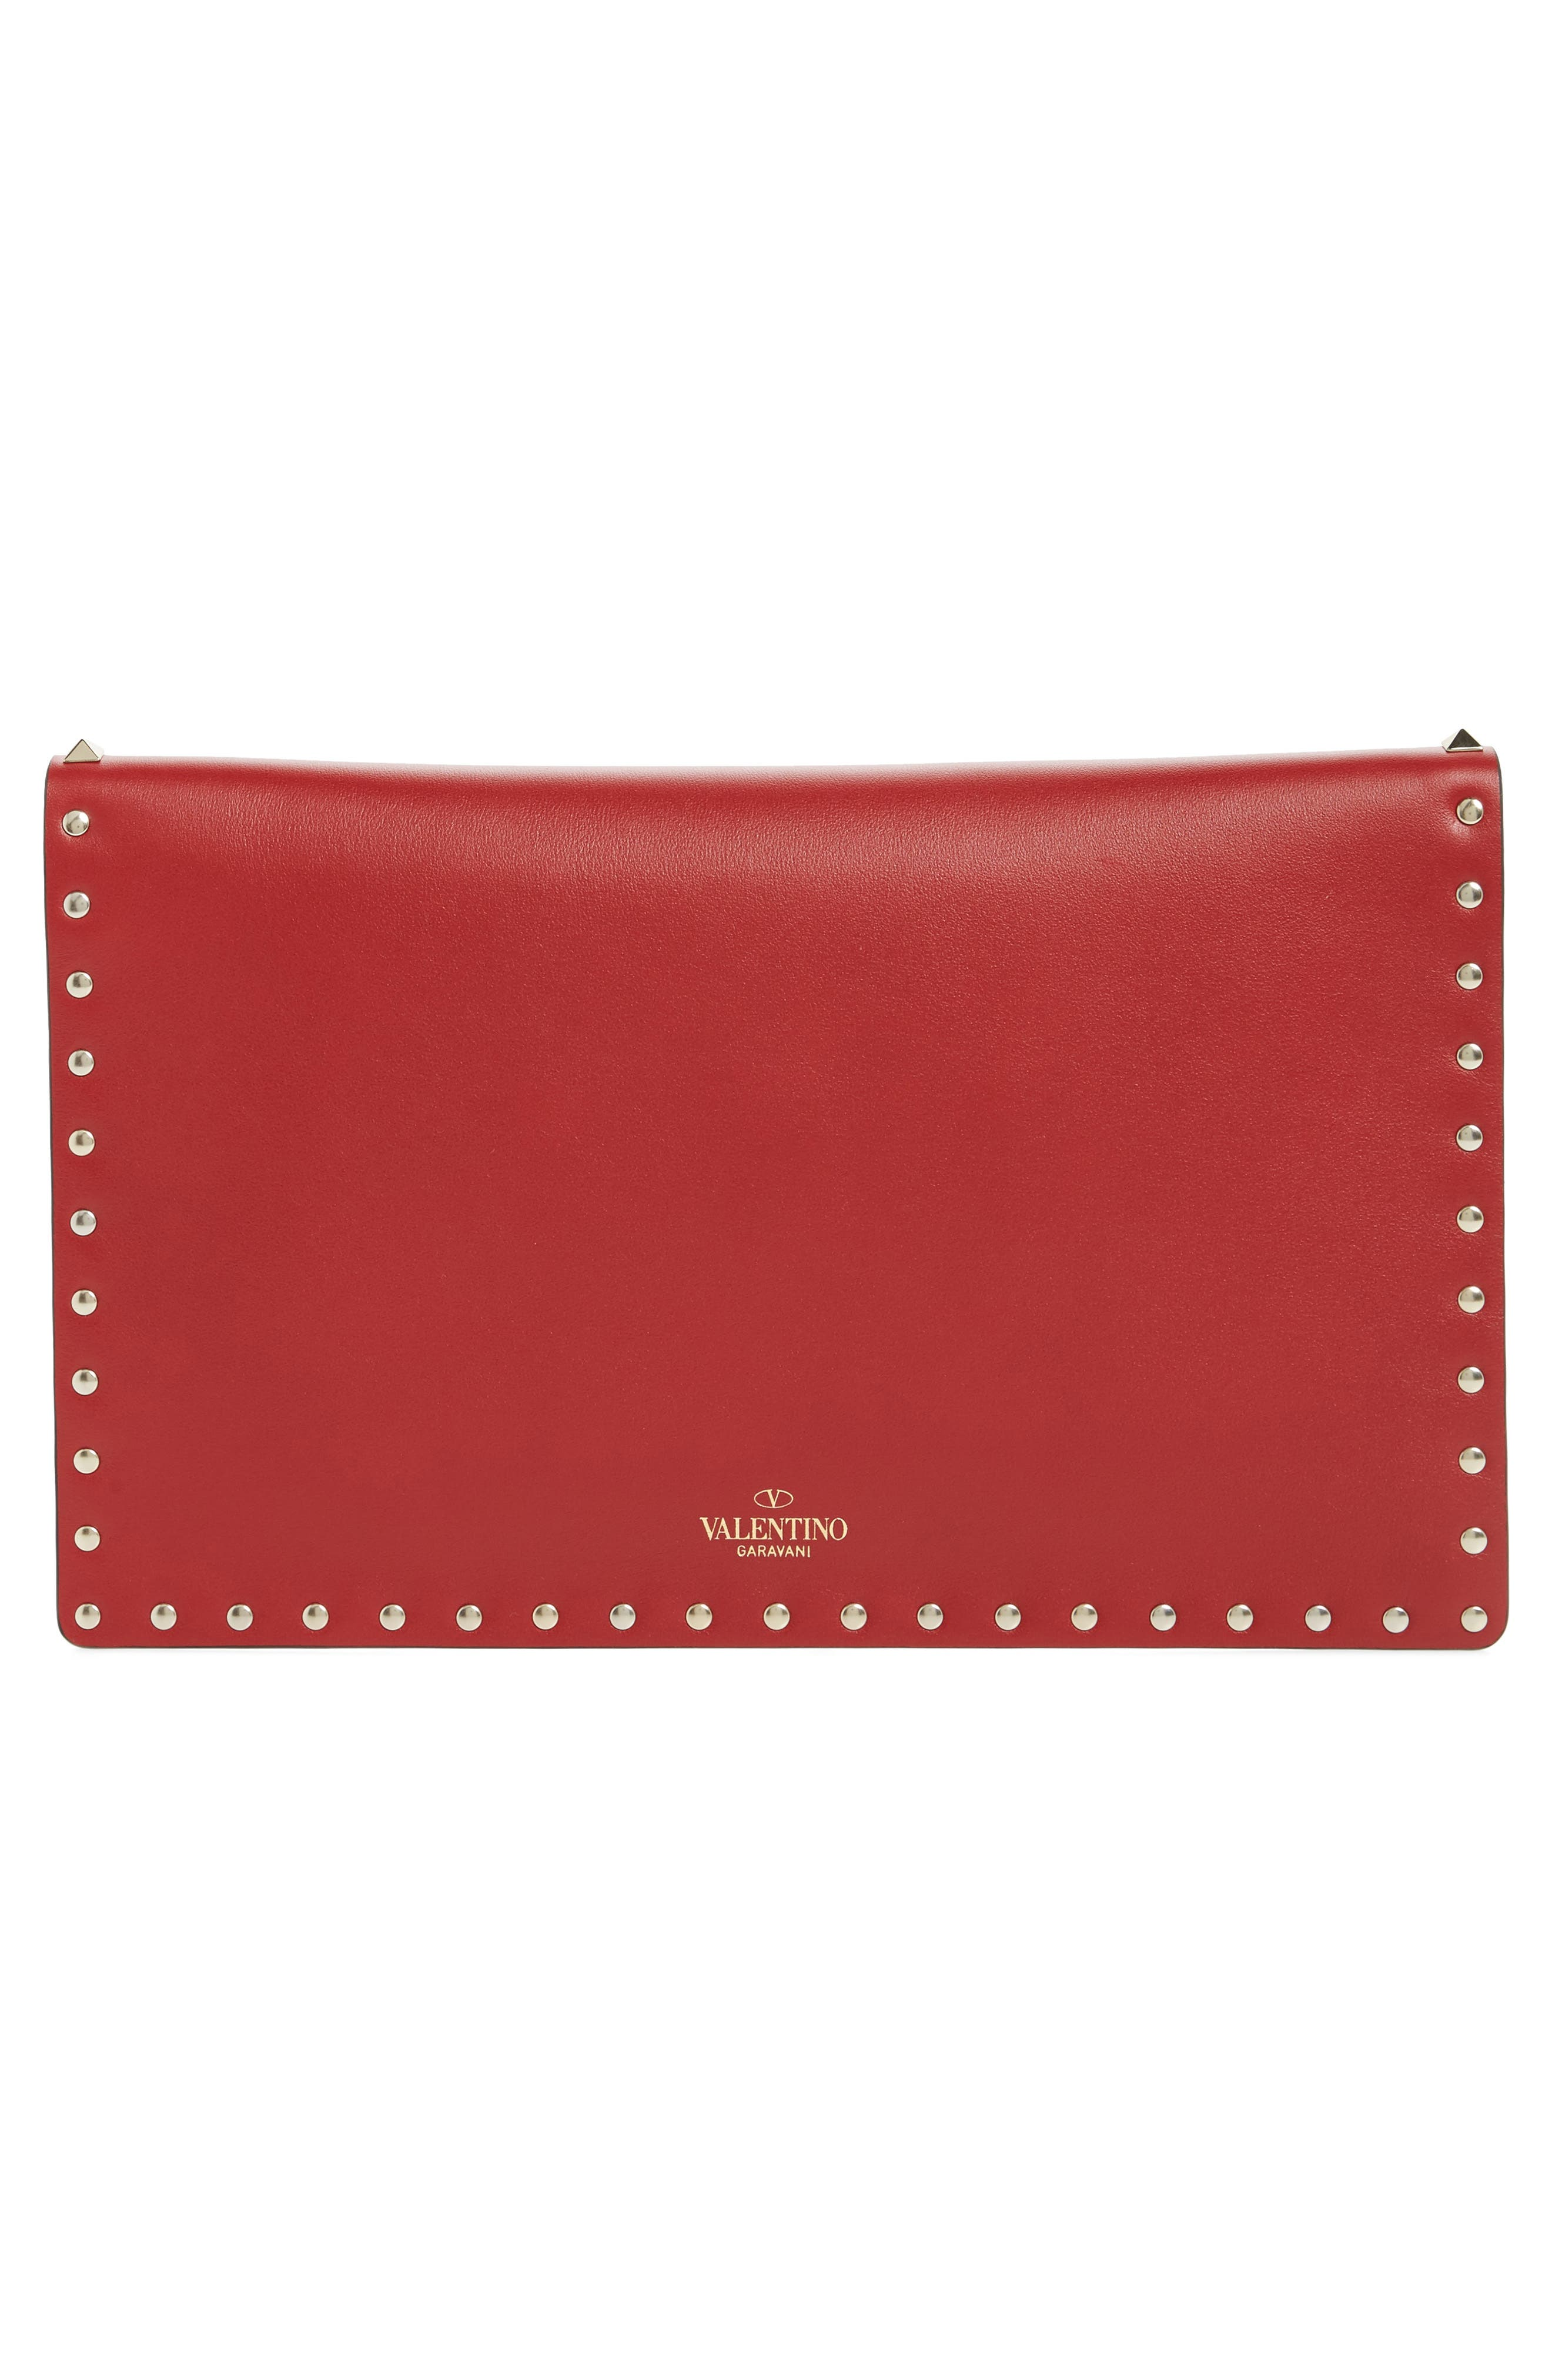 VALENTINO GARAVANI, Large Rockstud Calfskin Leather Envelope Pouch, Alternate thumbnail 3, color, PURE BLUE/ LIGHT IVORY/ ROSSO